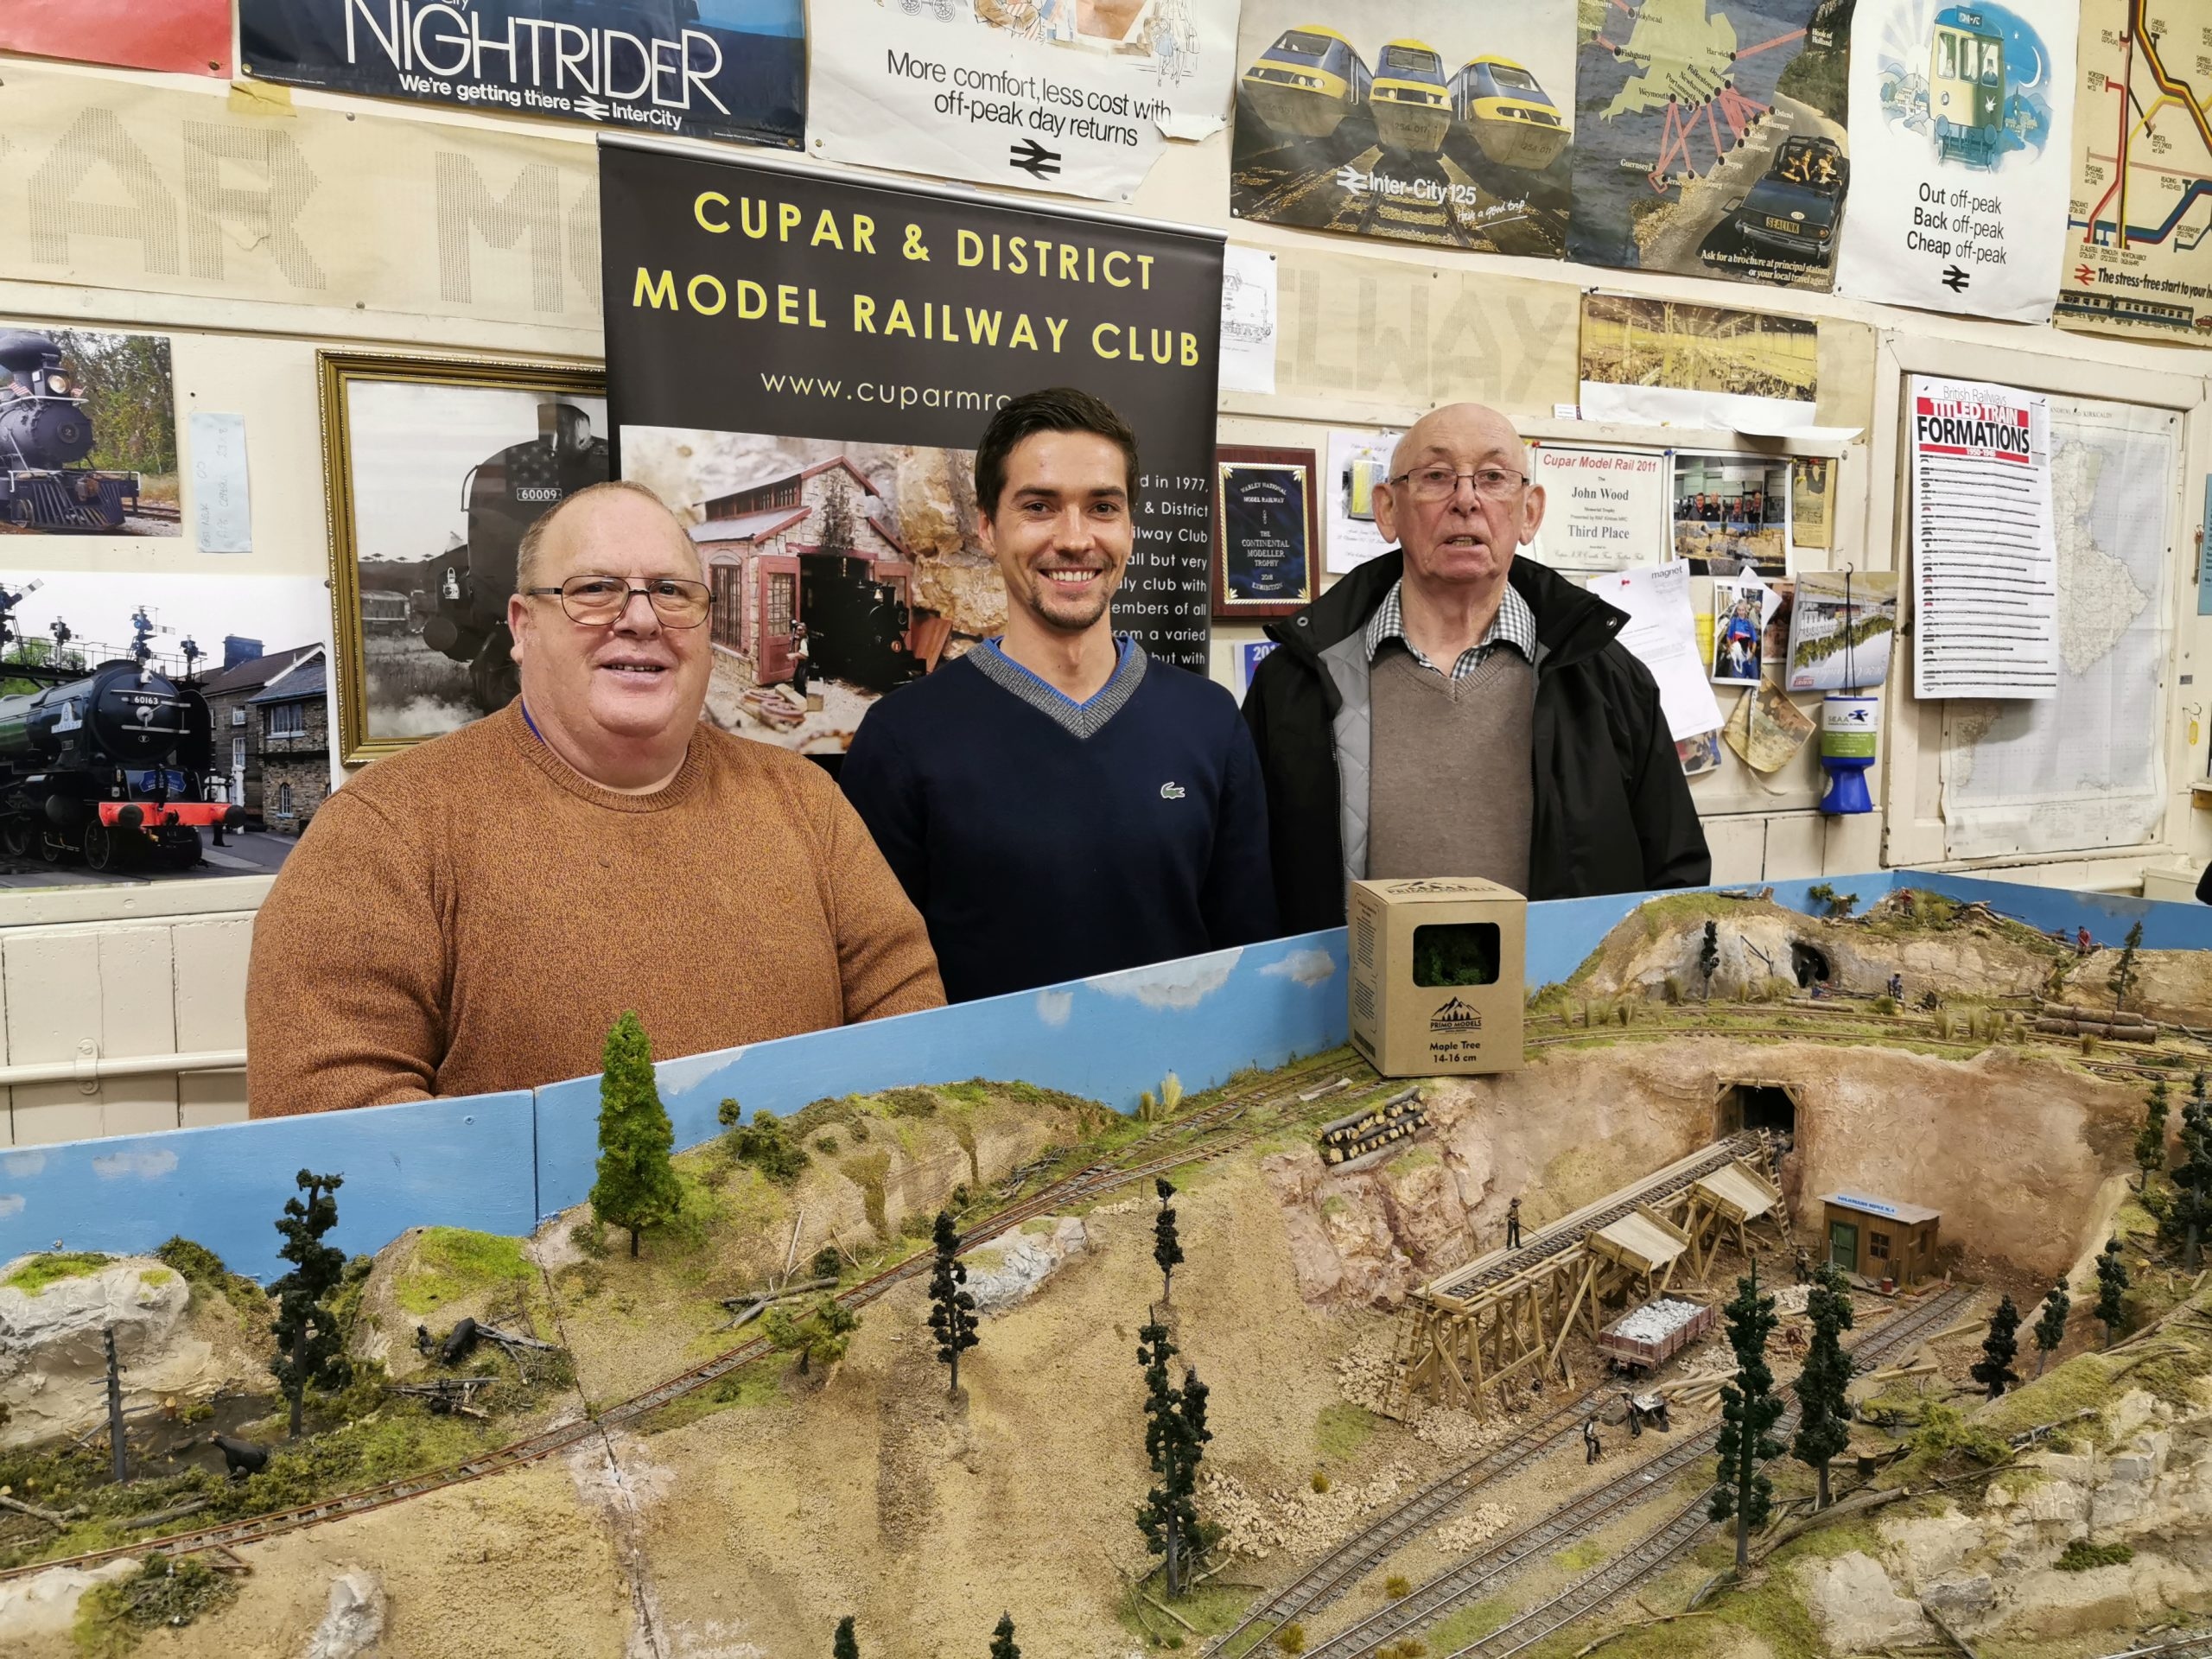 Cupar Model Railway Club members next to layout in O scale